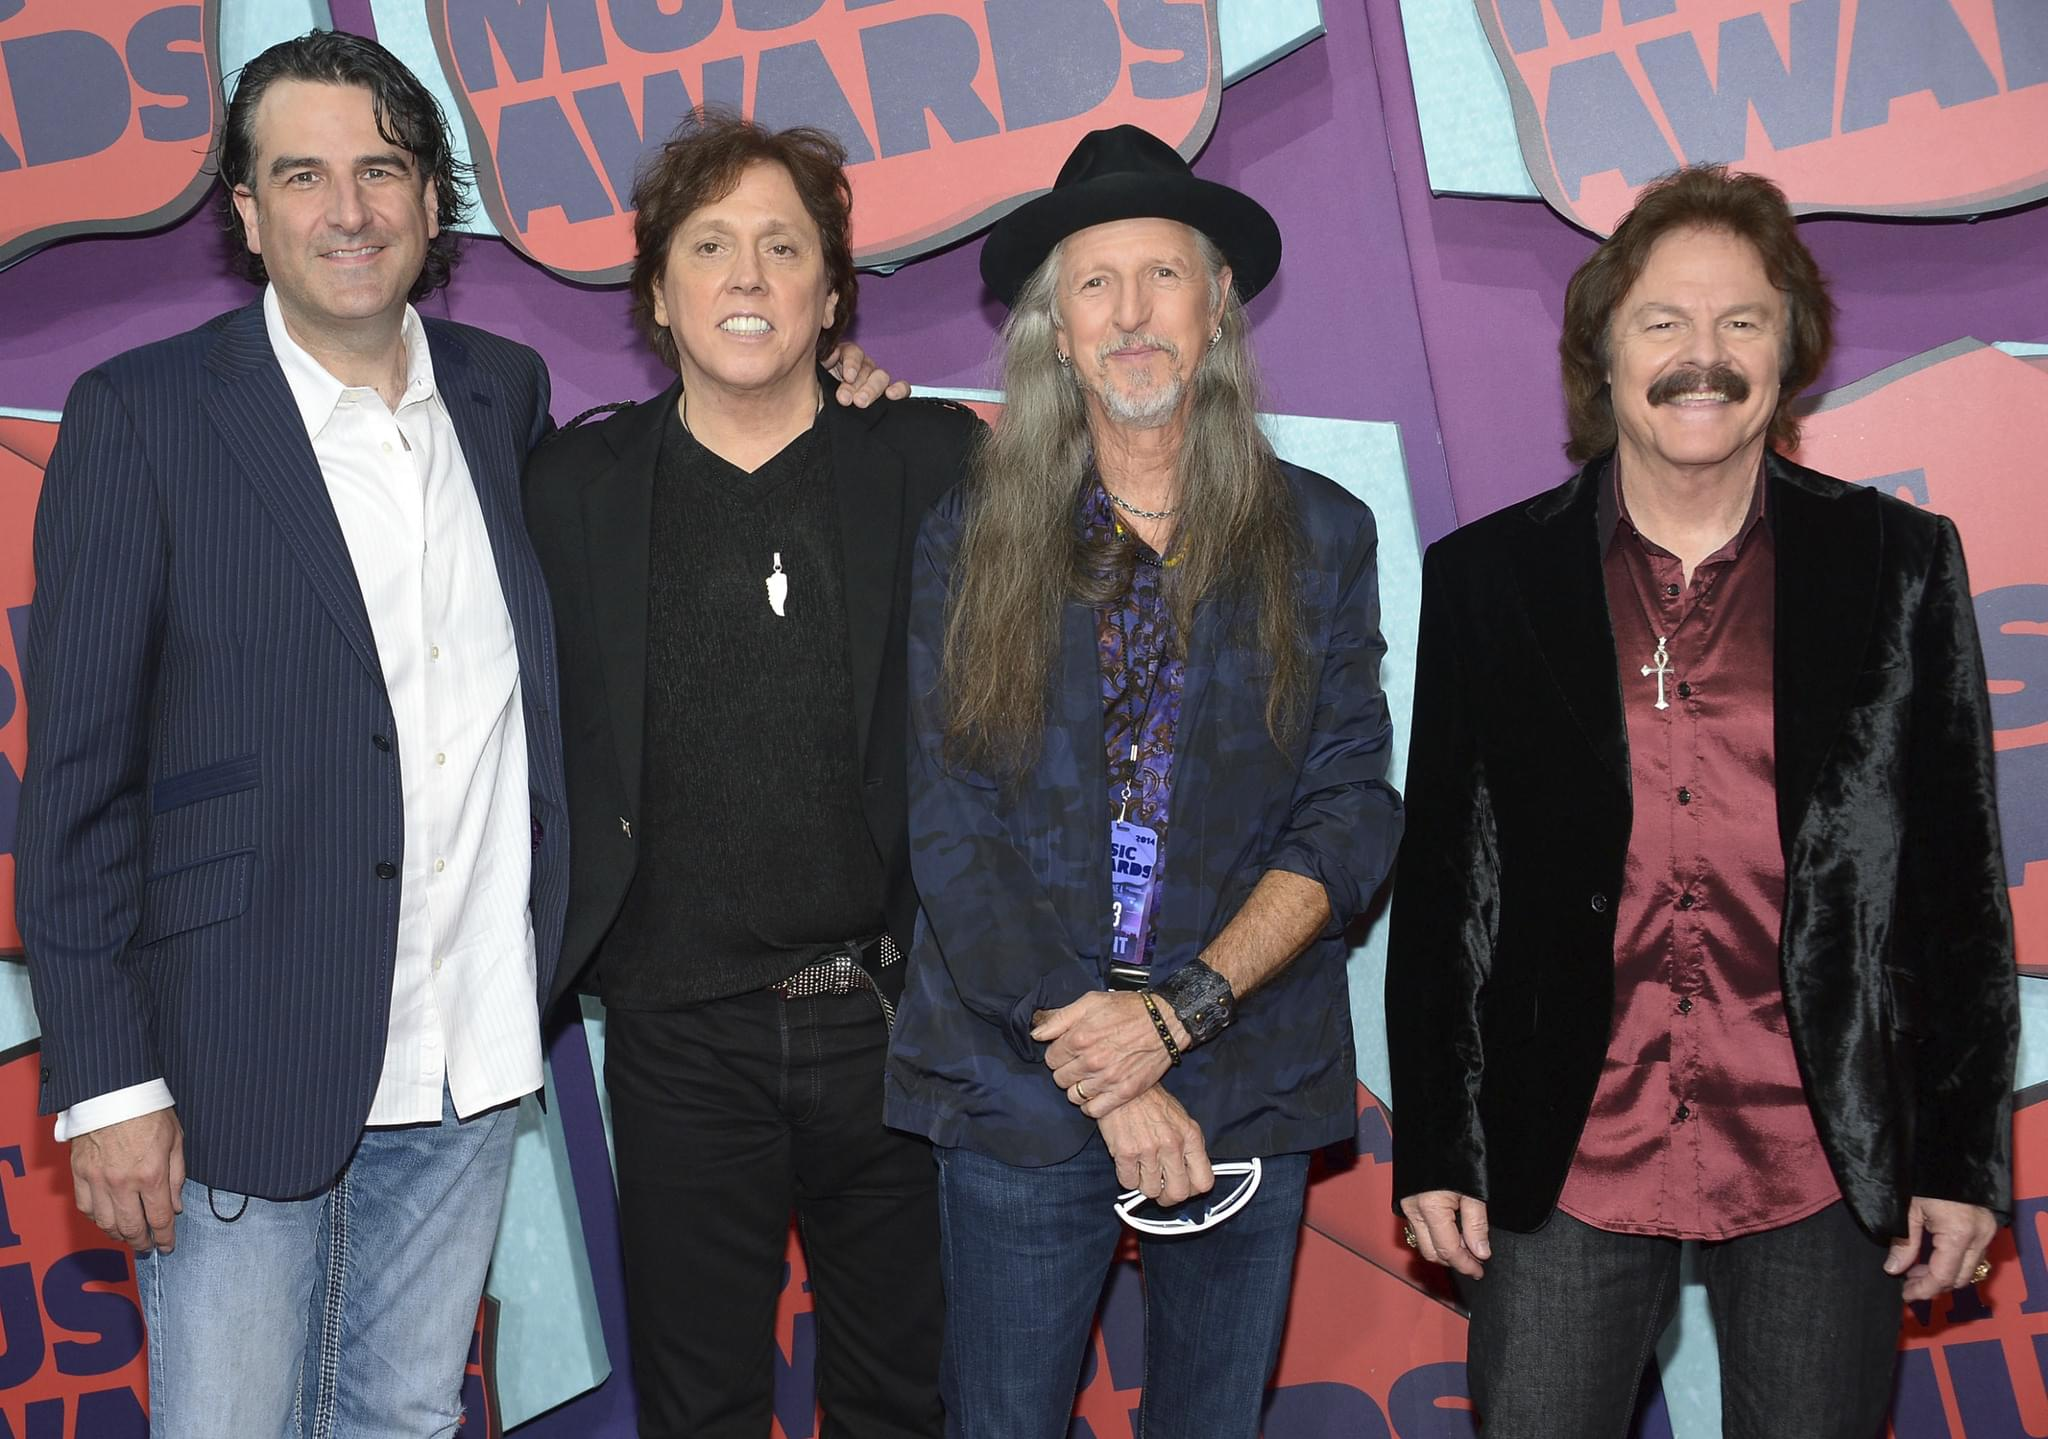 AOTM: Doobie Brothers and Steely Dan Announce Summer 2018 Tour